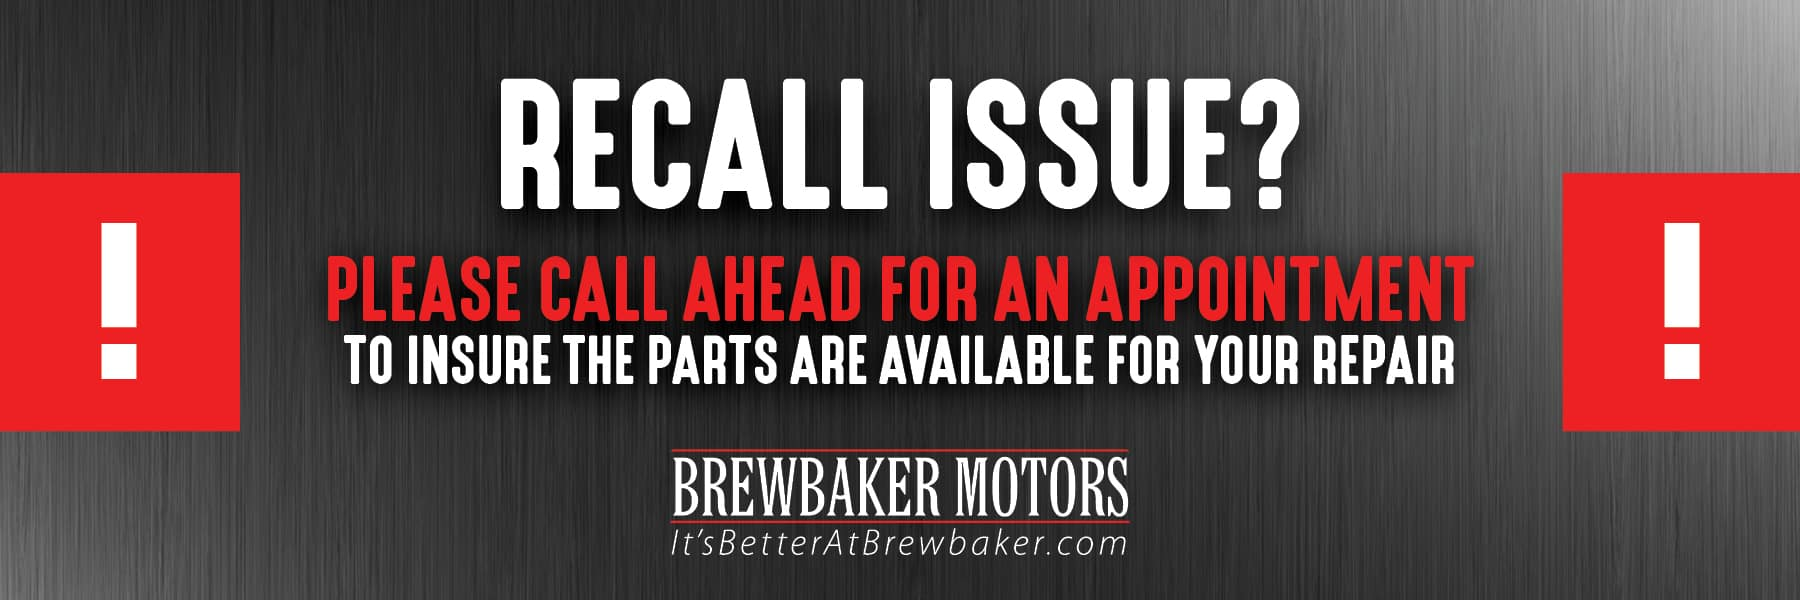 Brew Baker - Recall Issue